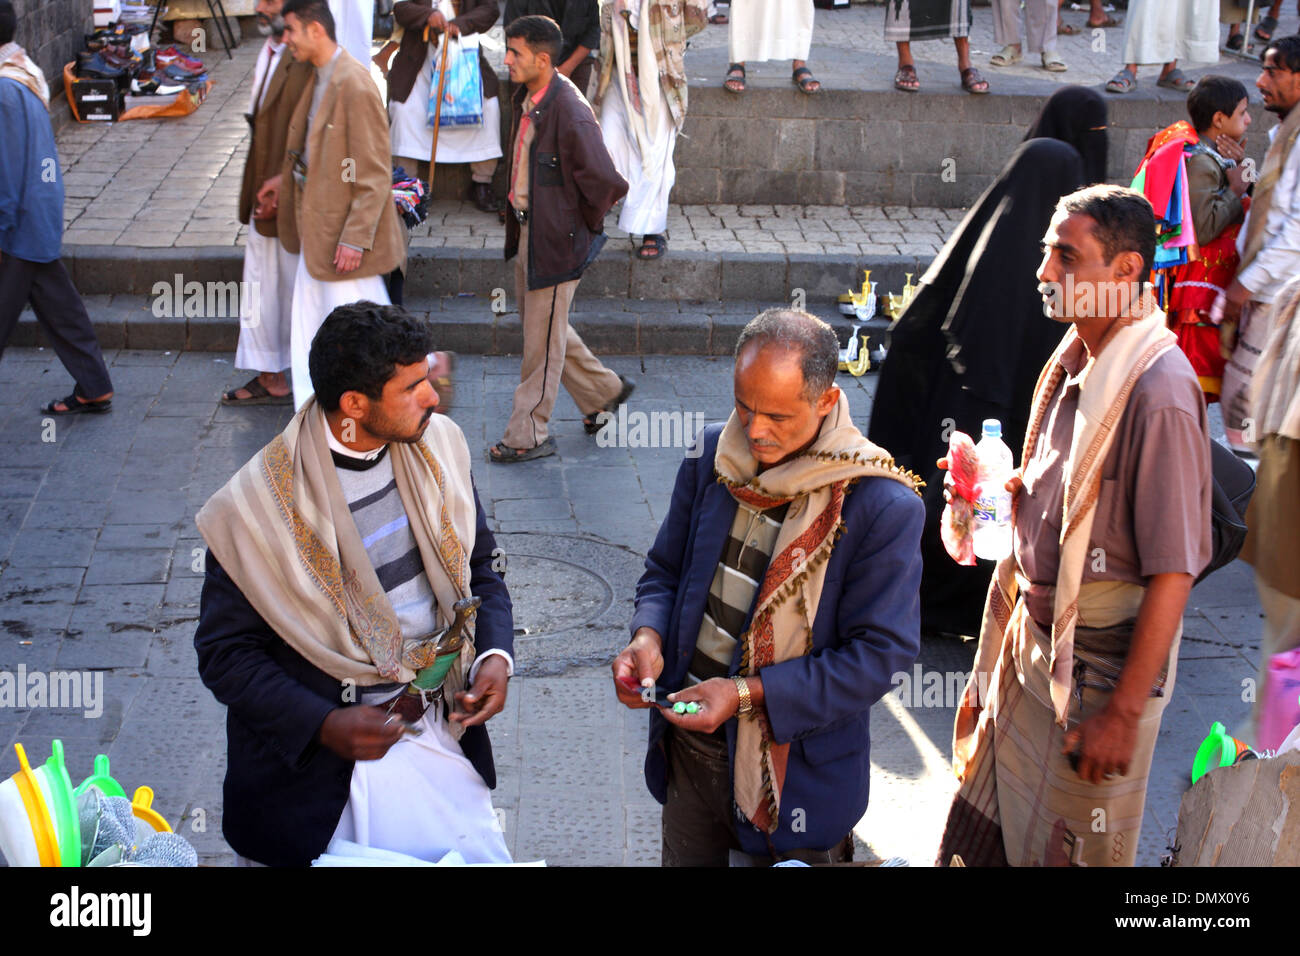 Men shopping in the old city, Sanaa, Yemen - Stock Image